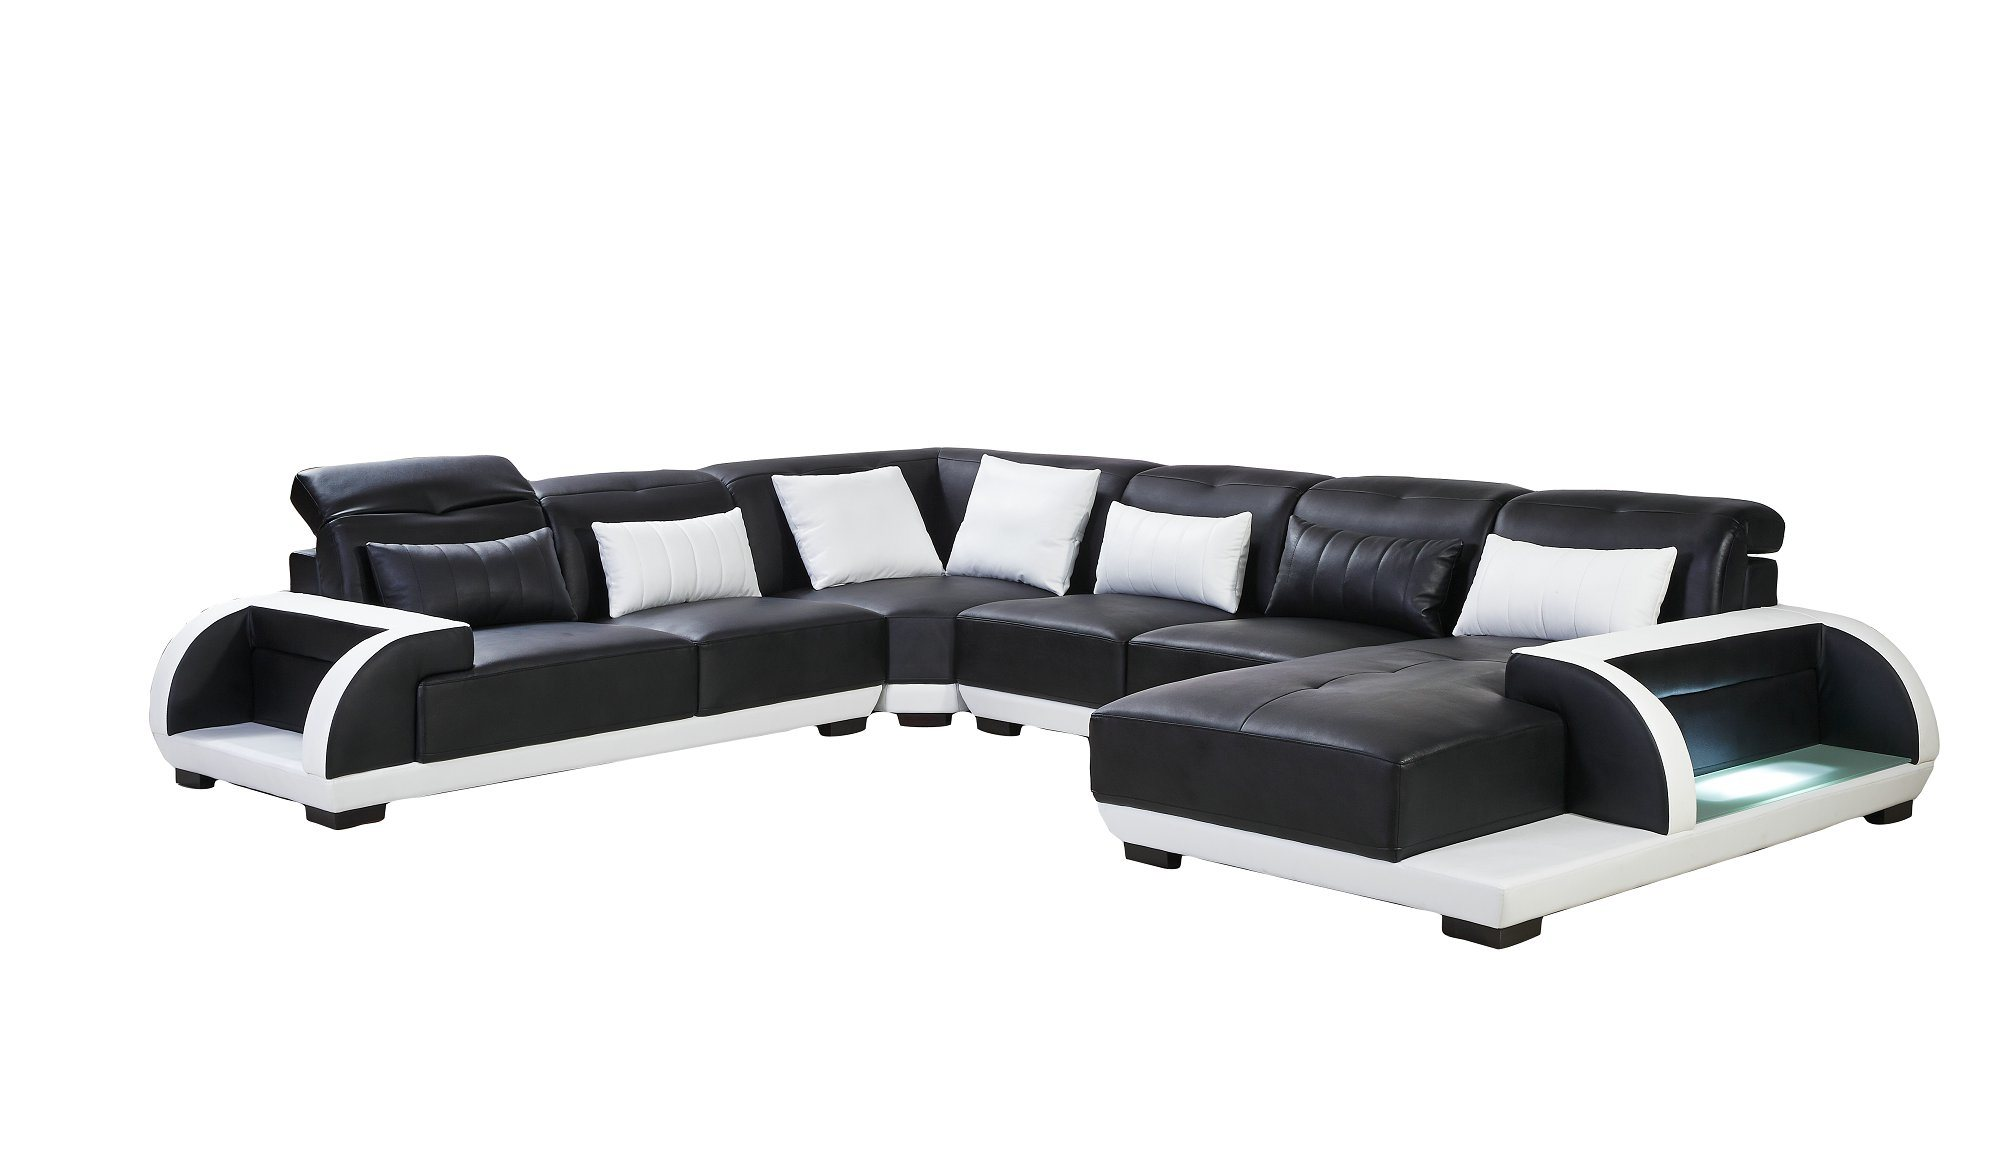 Living Room Furniture/Leisure Sectional Sofa Set/Sofa Bed